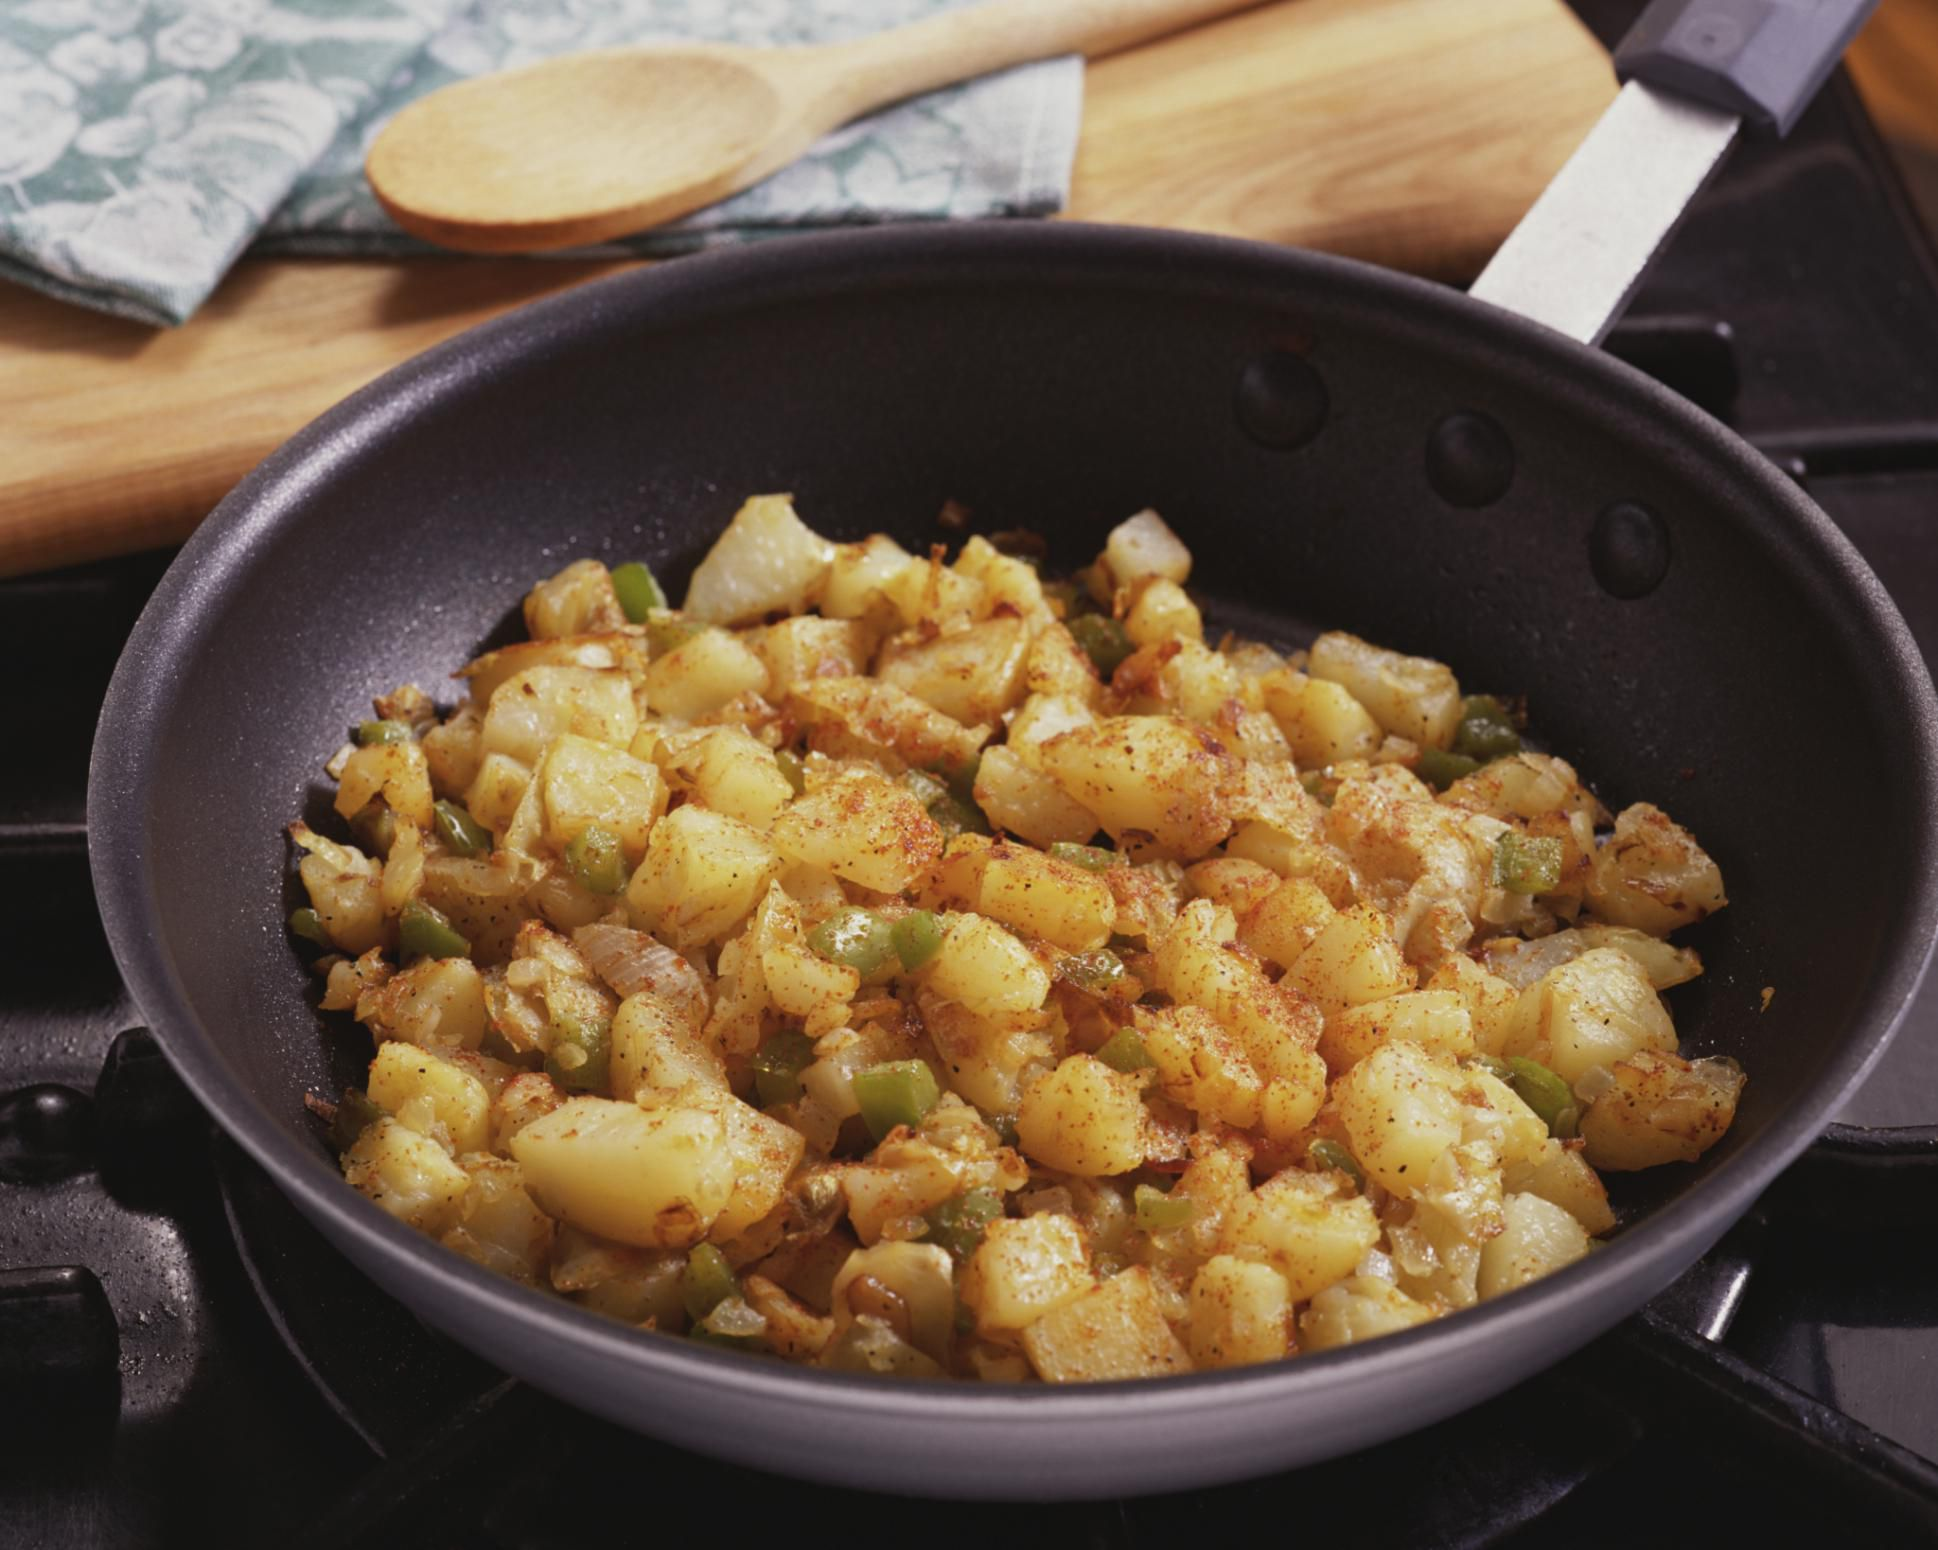 How to Make Easy and Tasty Home Fries With Red-Skin Potatoes